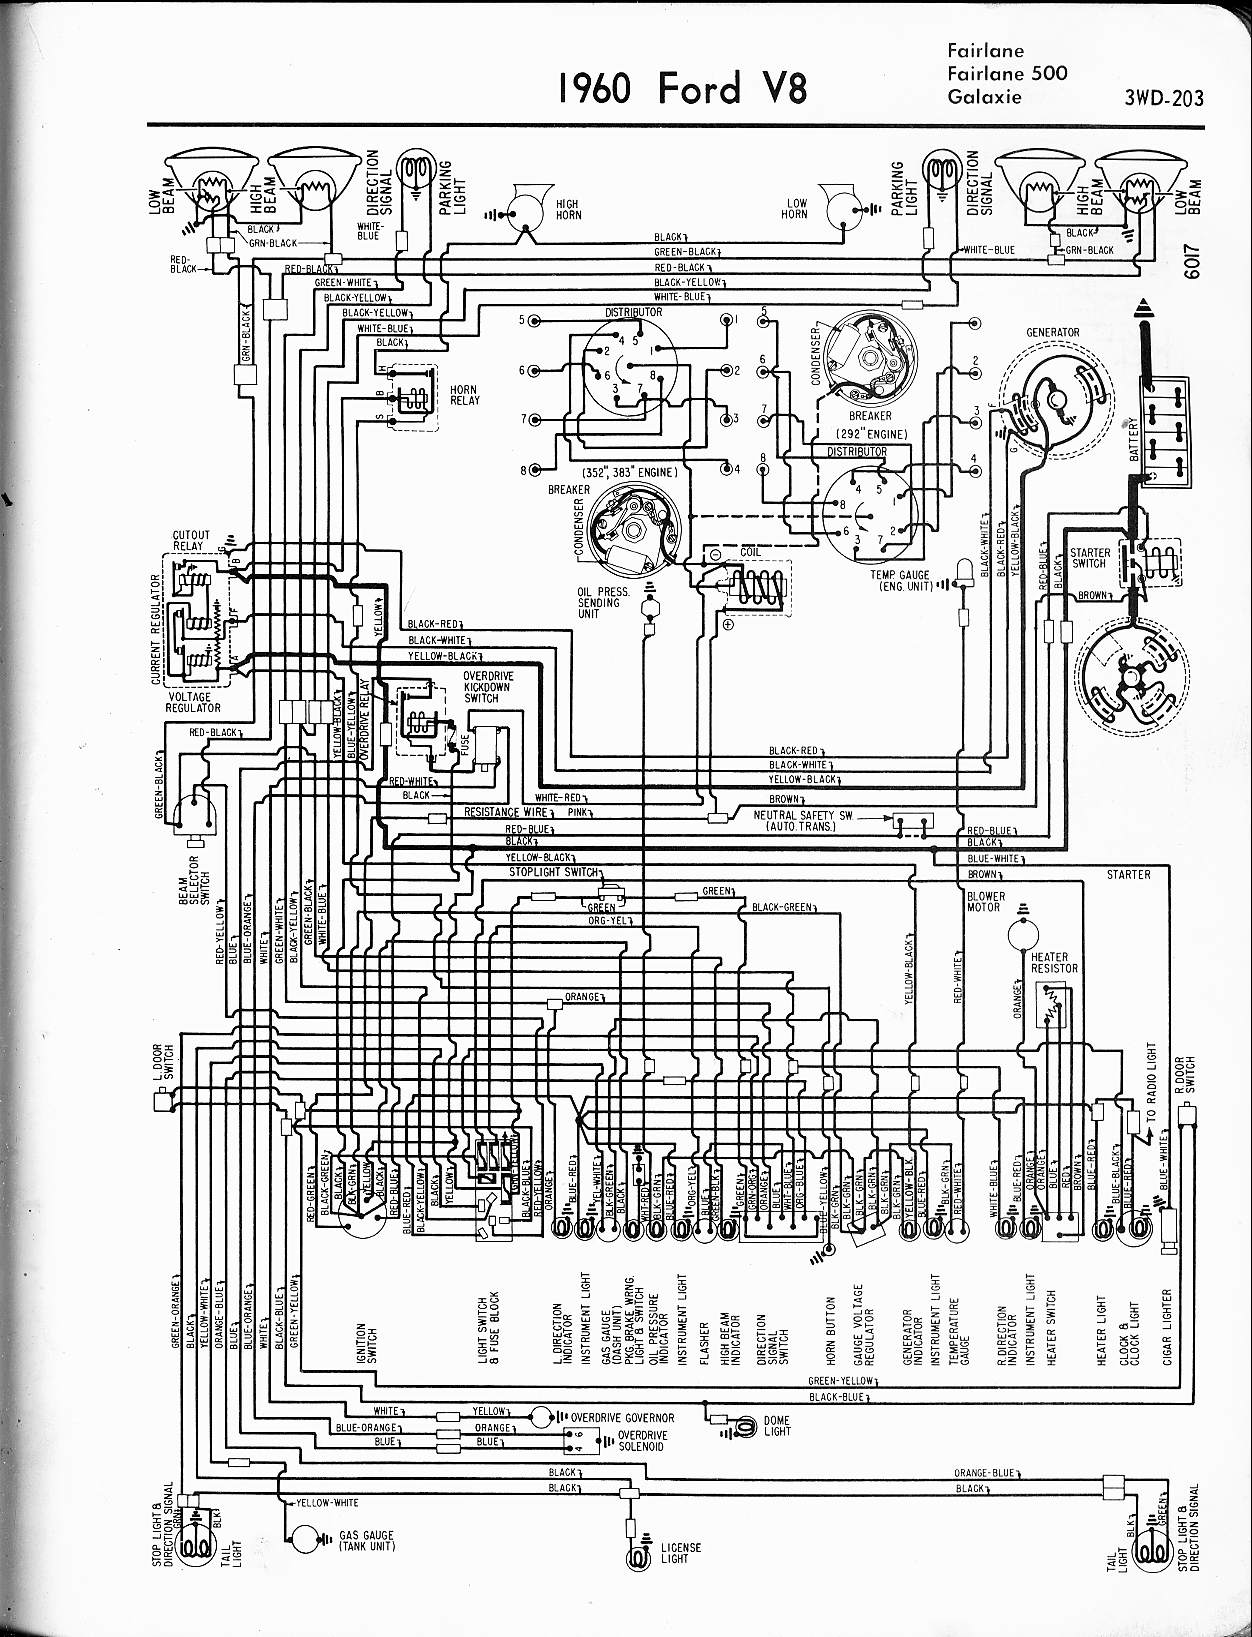 68 Thunderbird Wiring Diagram Libraries Premium Sound 57 65 Ford Diagrams1960 V8 Fairlane 500 Galaxie